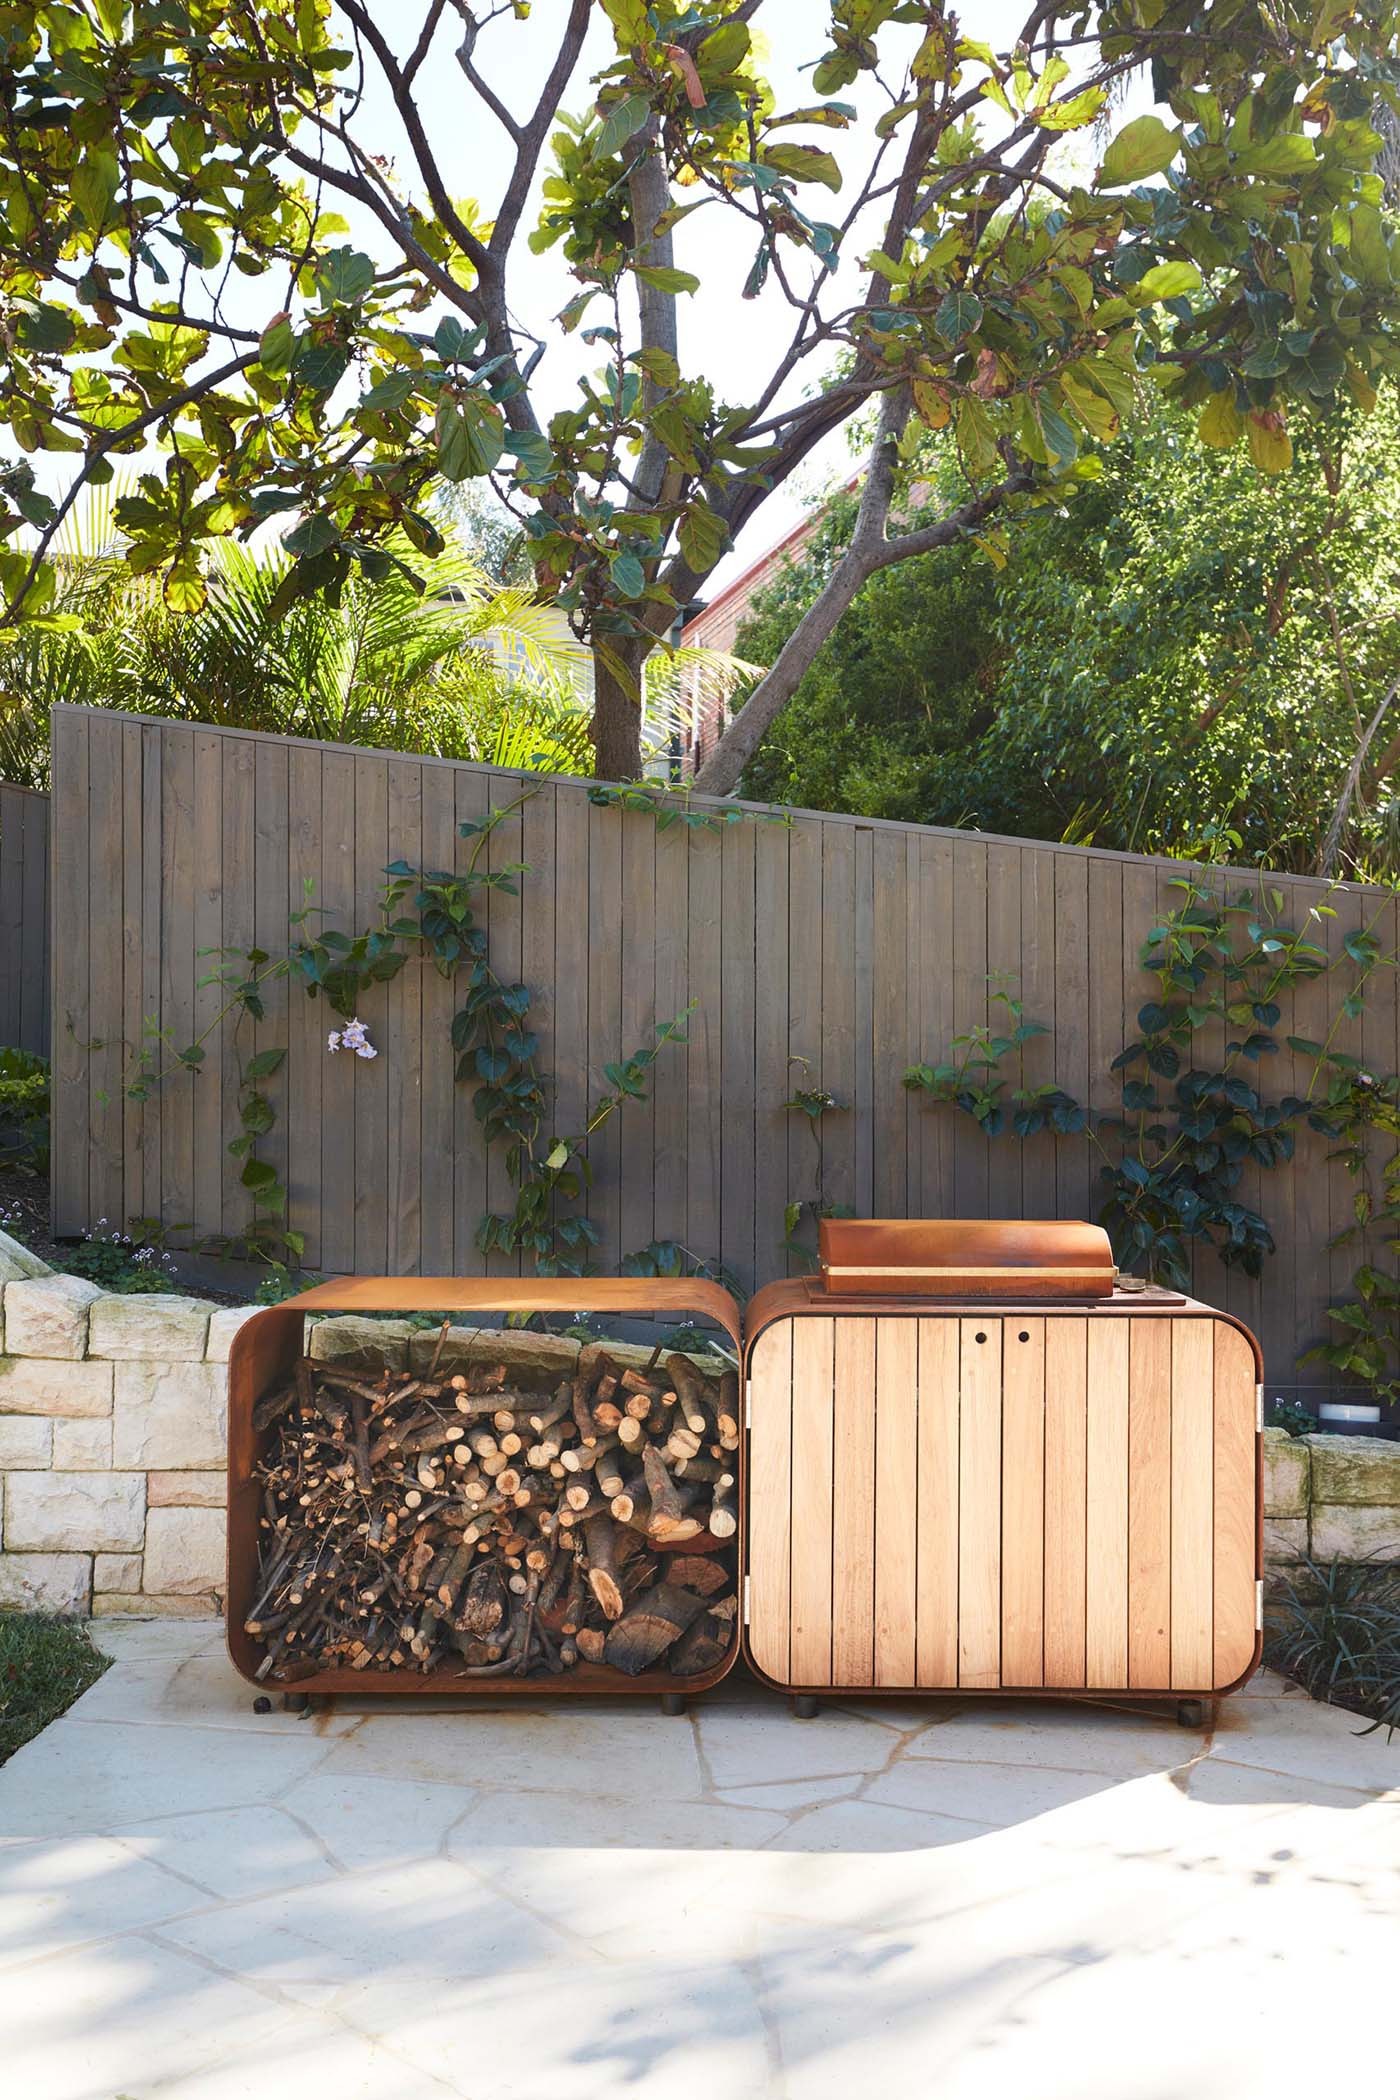 Outdoor firewood storage and bbq area.